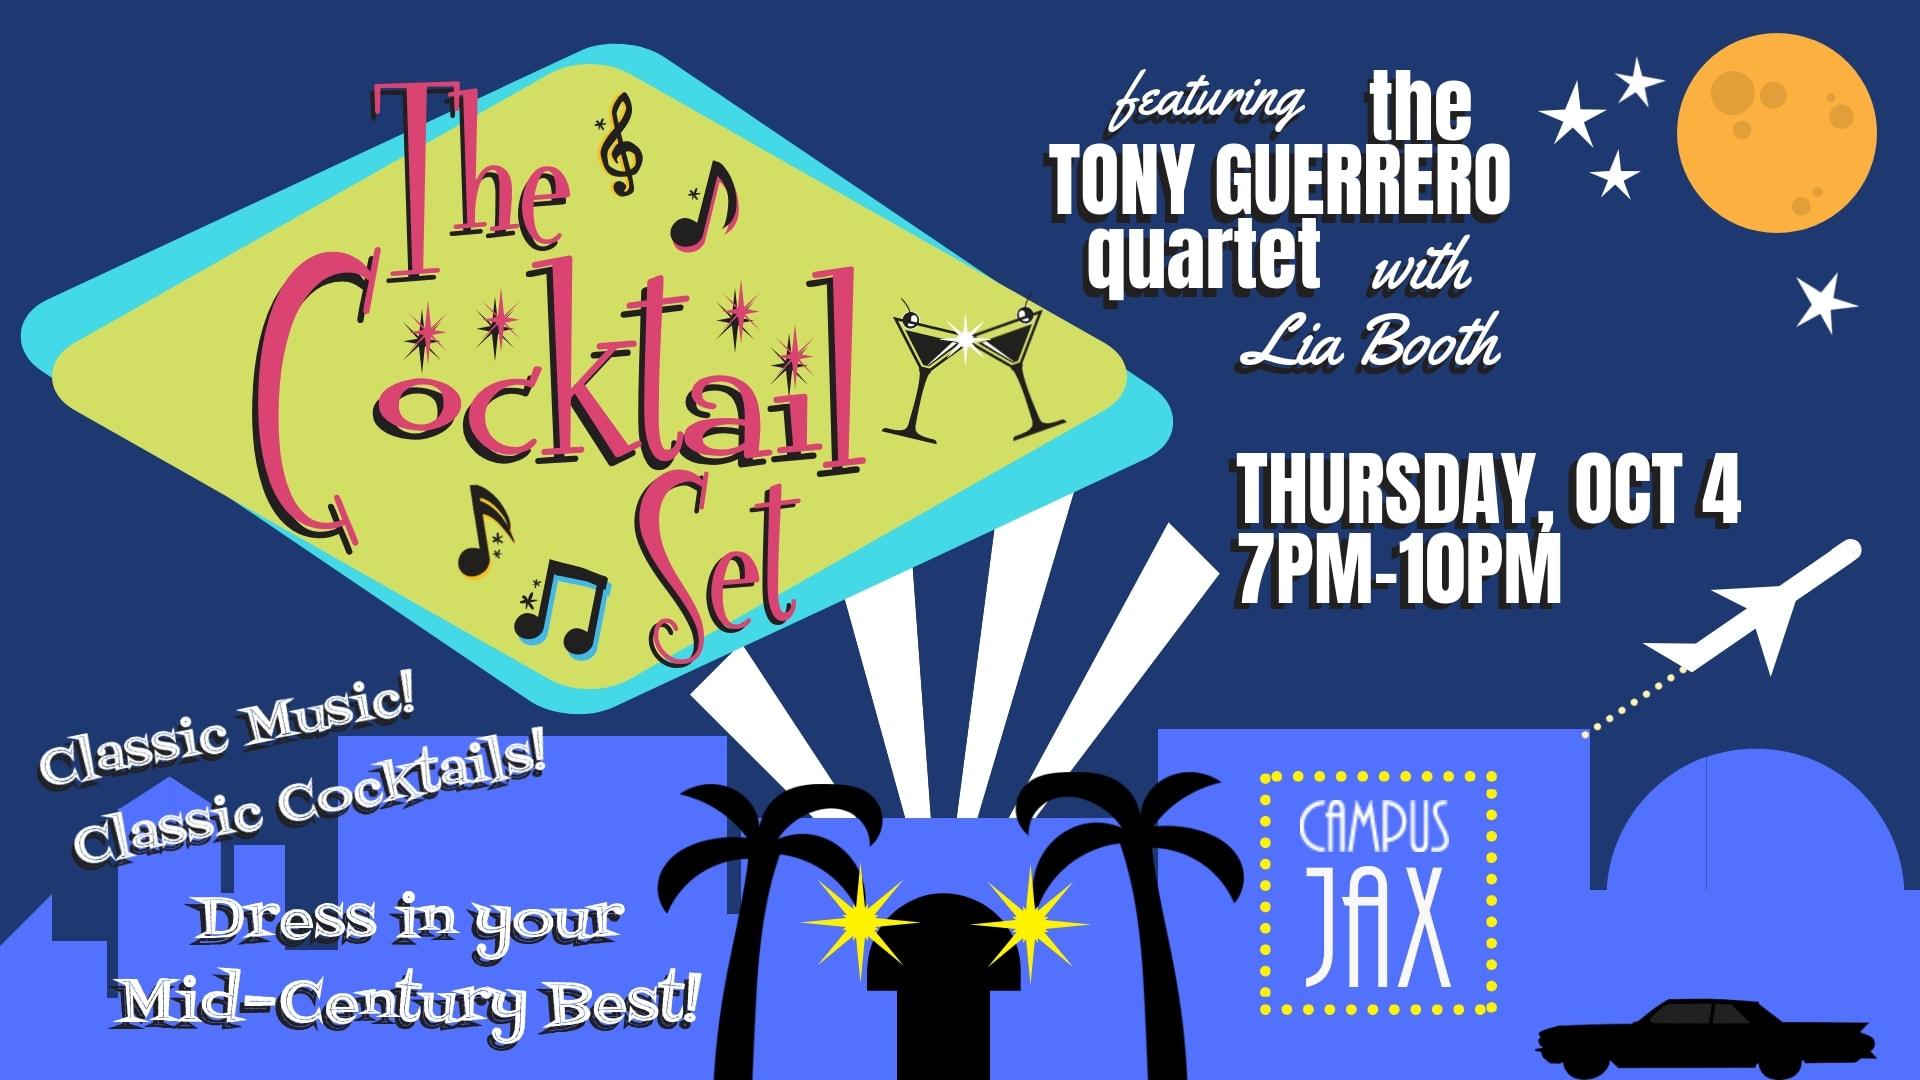 October 4 | THE COCKTAIL SET with TONY GUERRERO